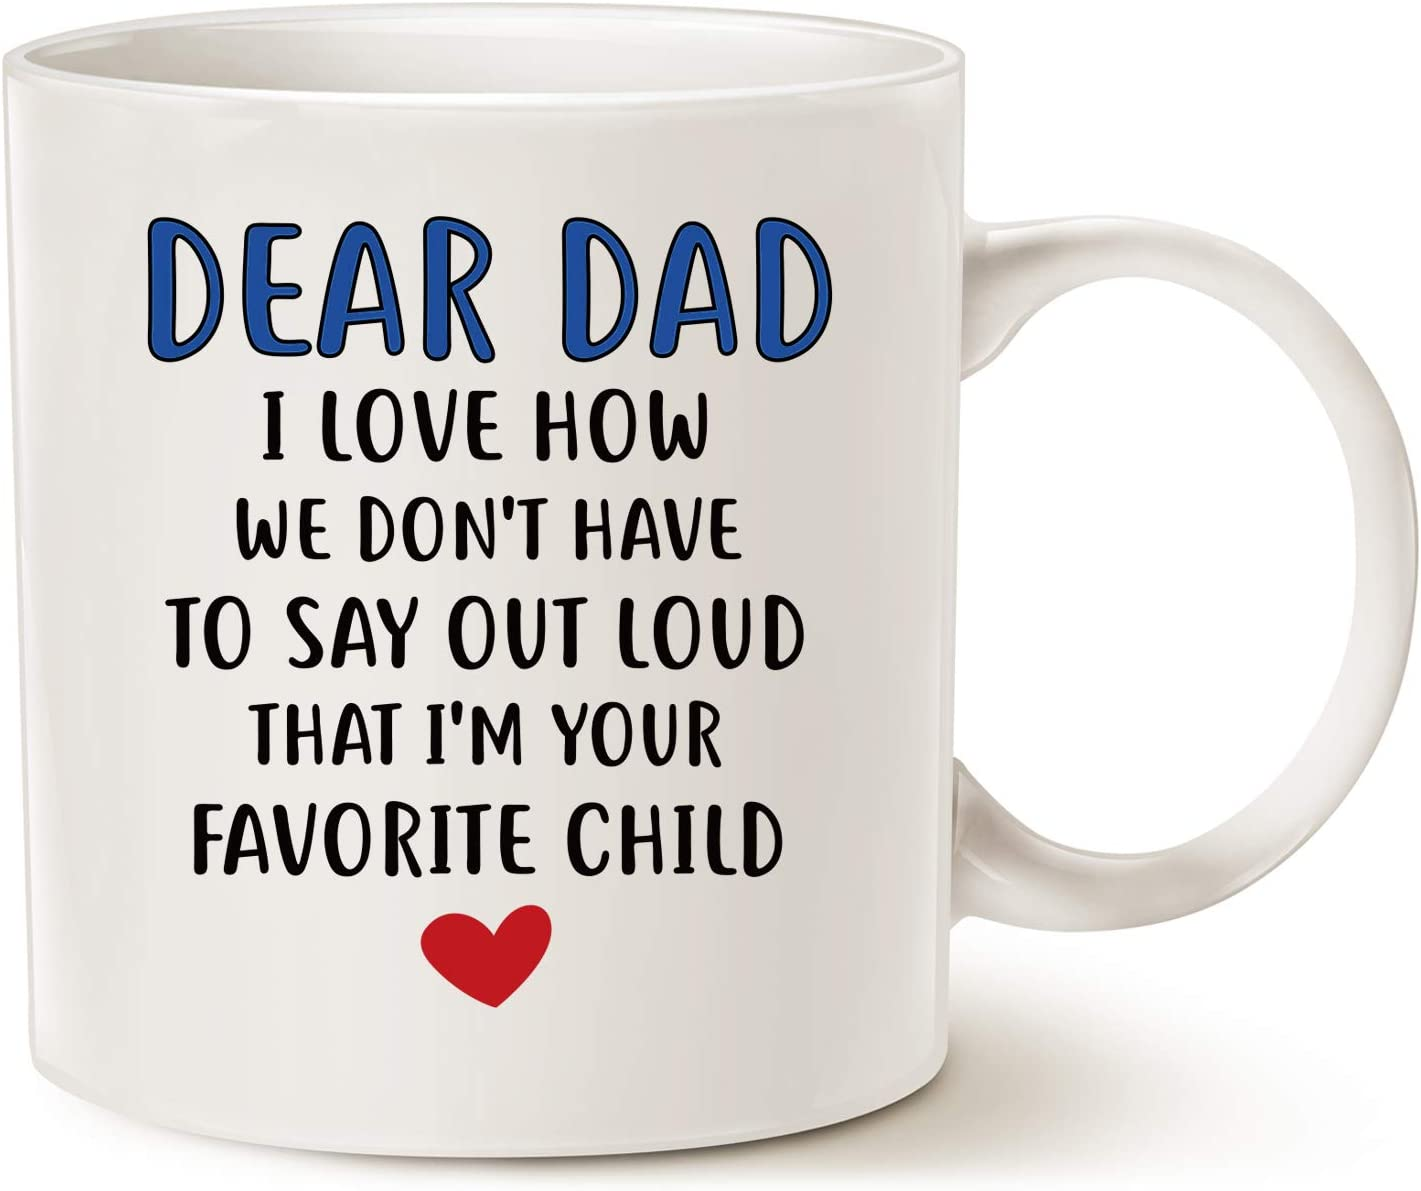 MAUAG Fathers Day Gifts Funny Christmas Gifts Coffee Mug for Dad, Dear Dad, I'm Your Favorite Child Coffee Mug, Best Birthday Gift Cup from Daughter or Son, White 11 Oz